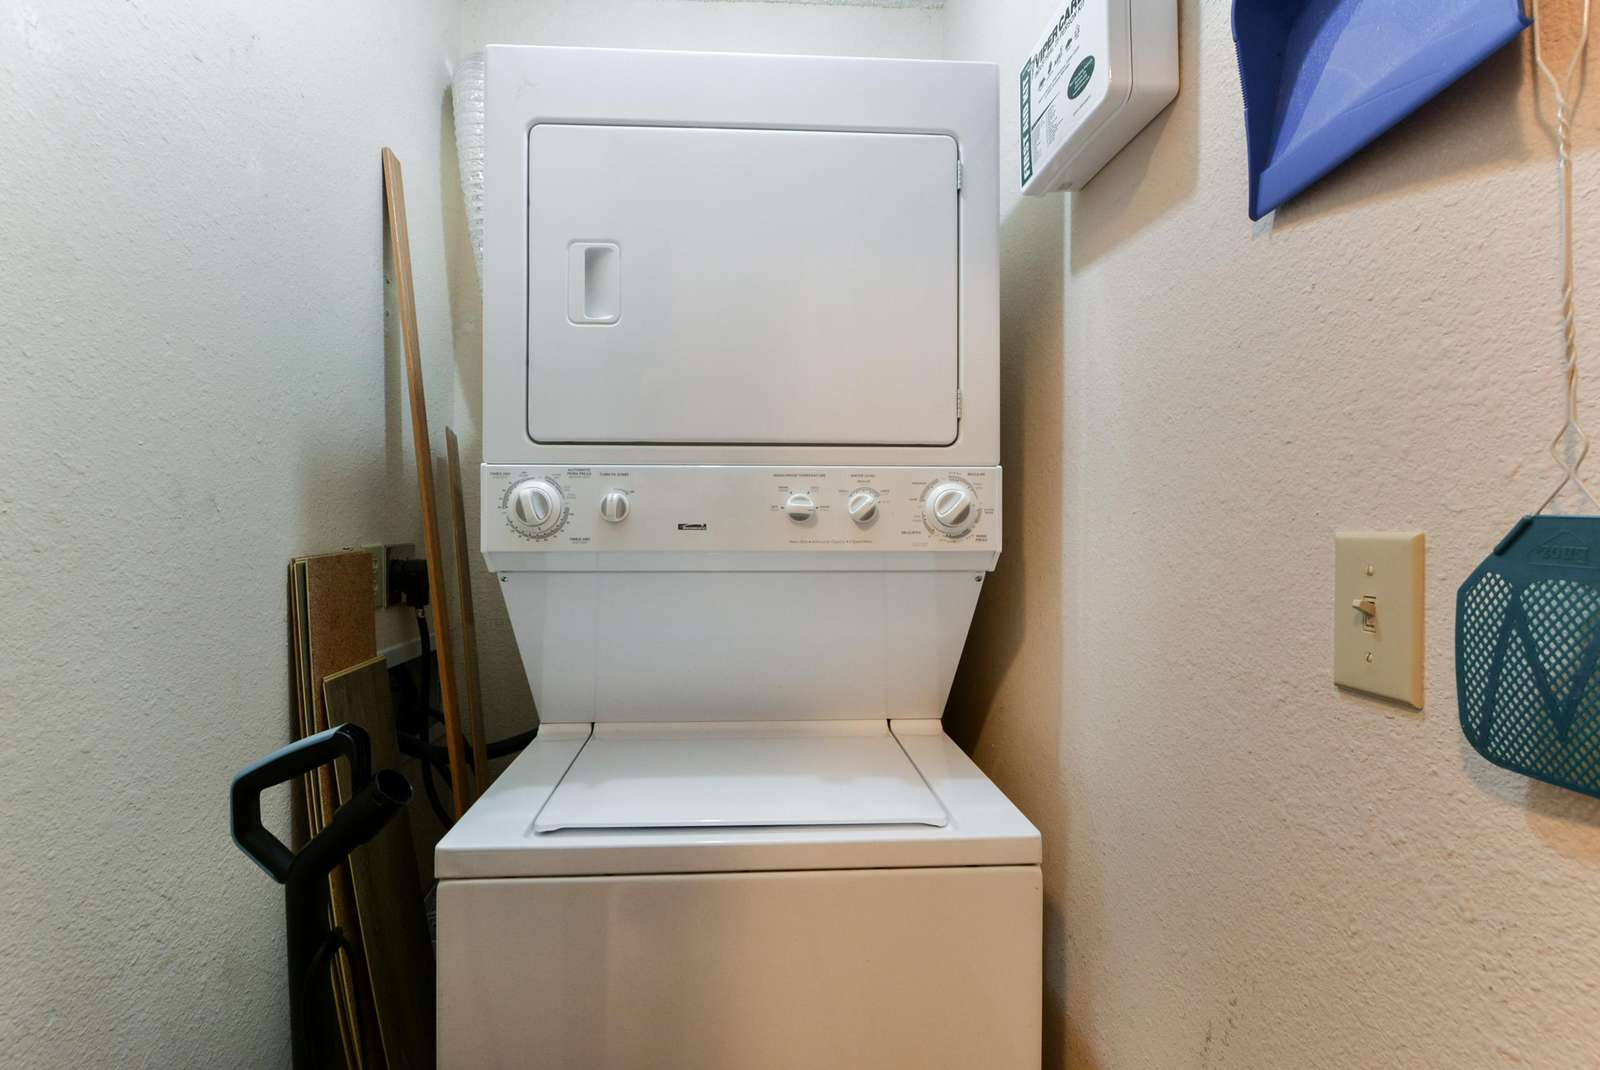 Laundry soap and dryer sheets provided